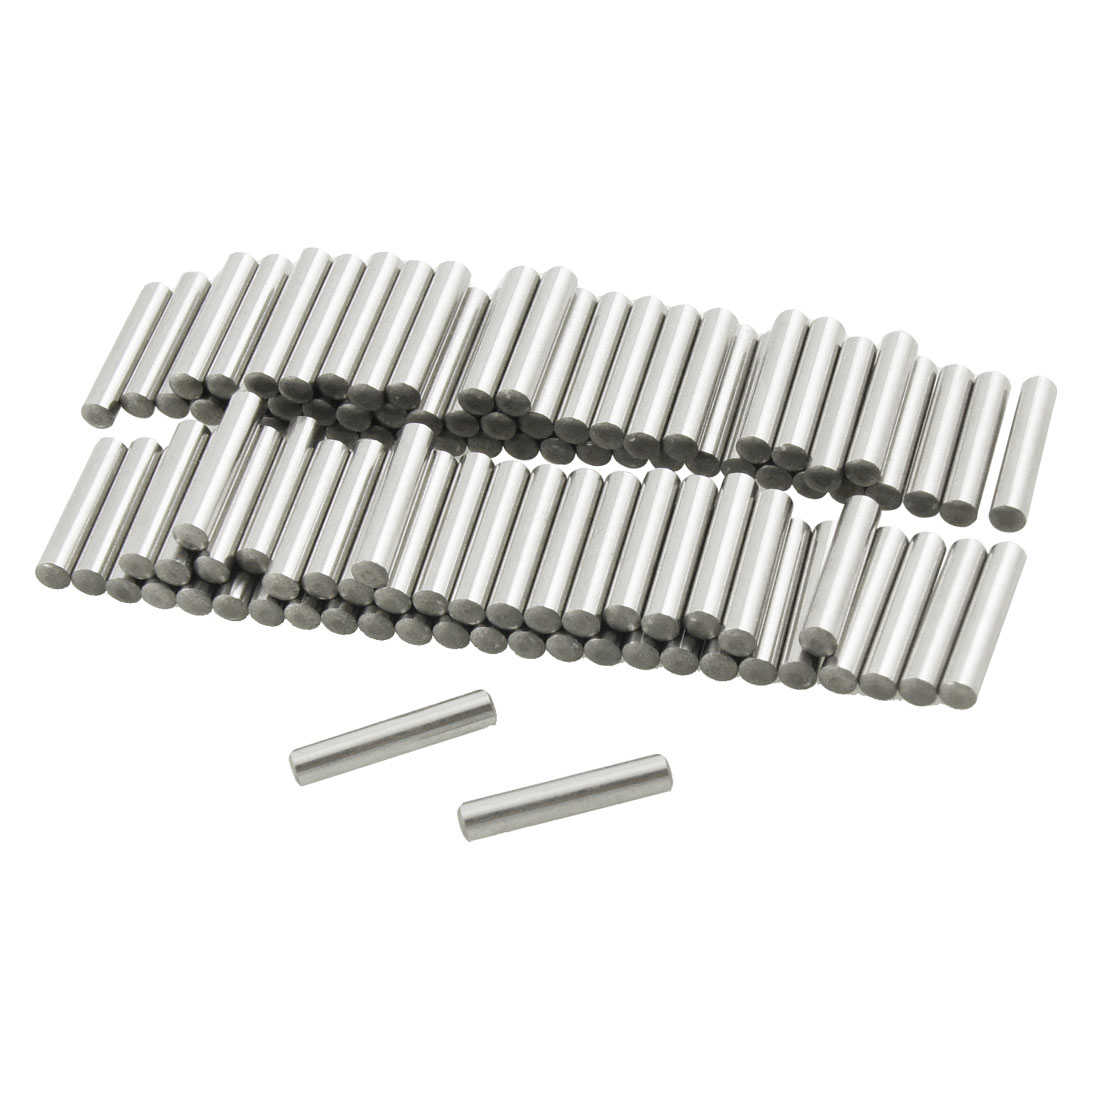 Unique Bargains 100 Pcs 2.8mm x 15.8mm Parallel Dowel Pins Fasten Elements